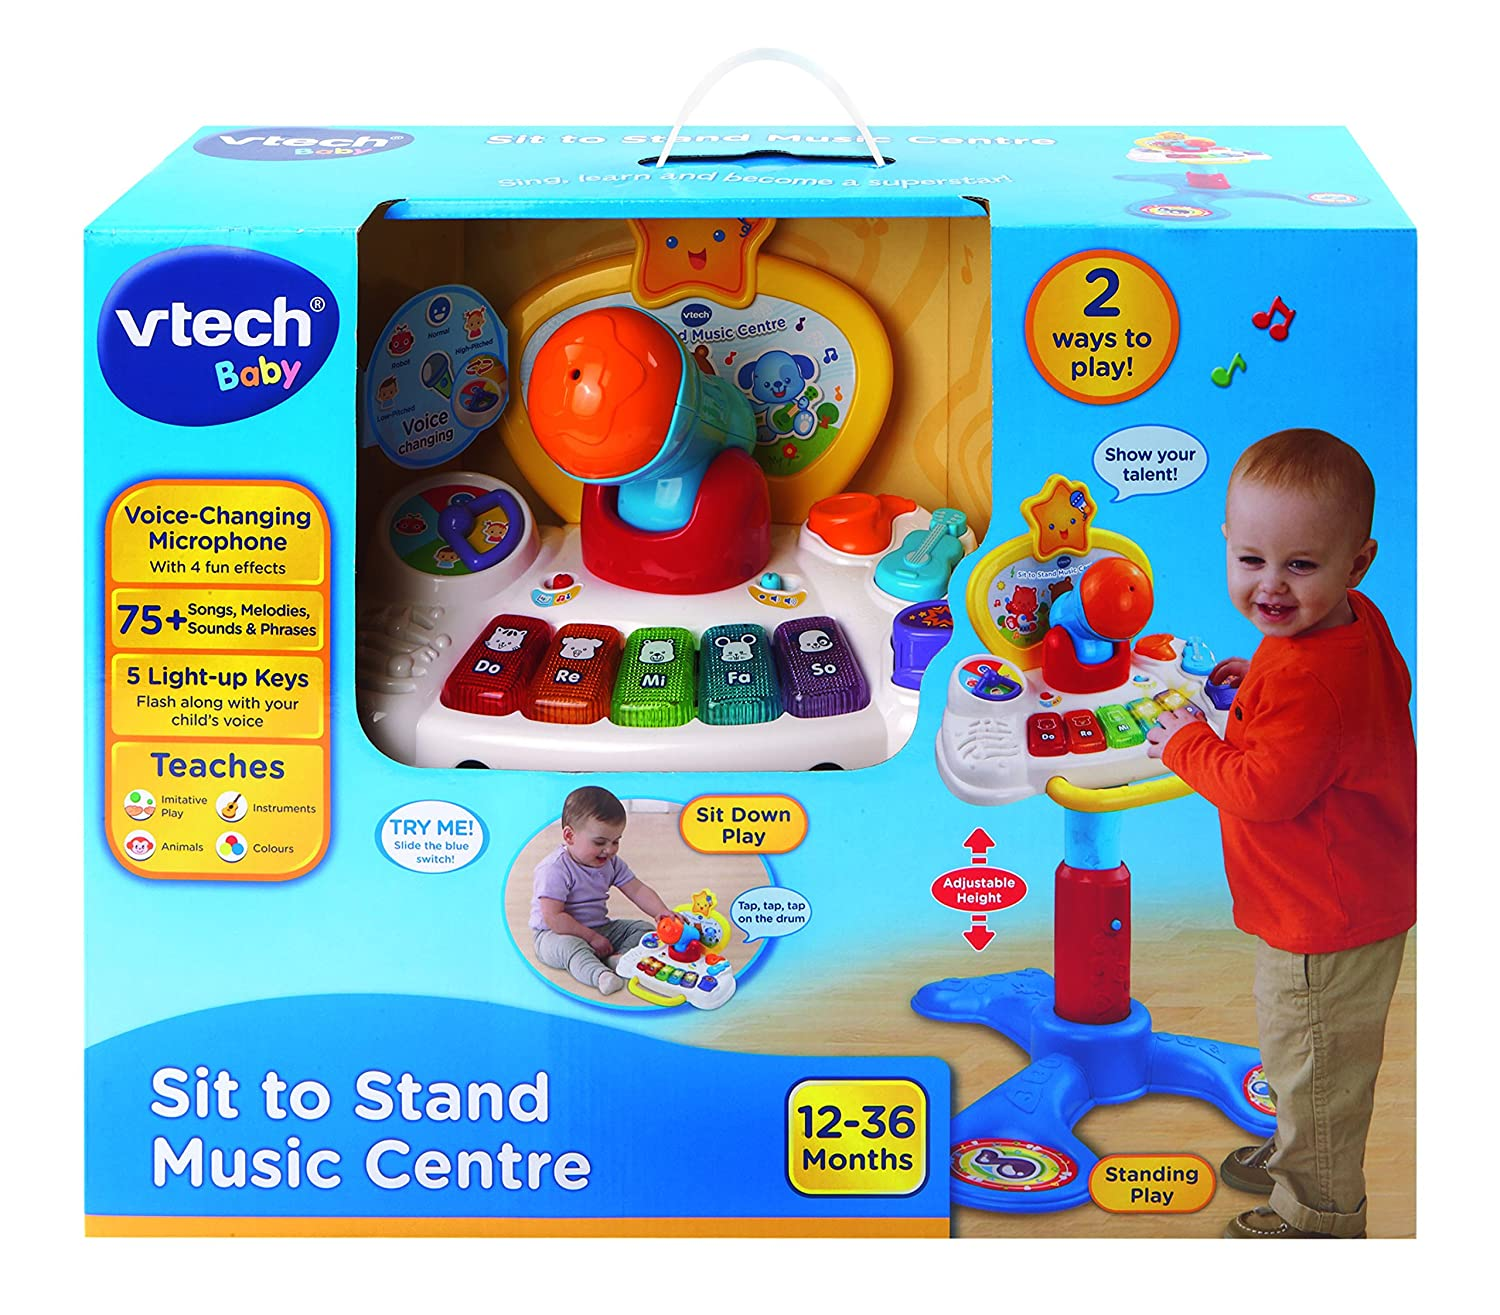 VTech Baby Sit to Stand Music Centre Amazon Toys & Games